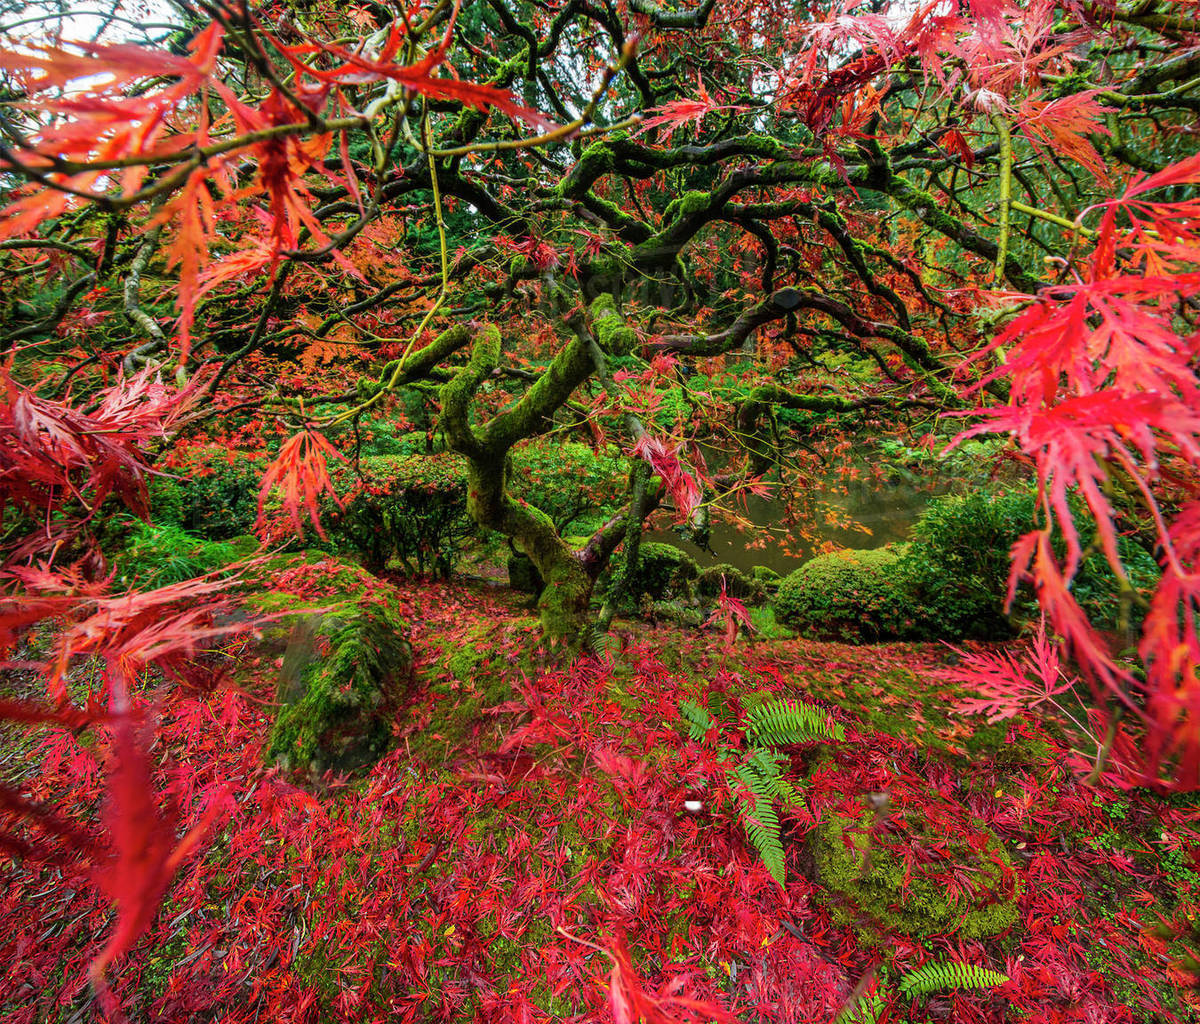 High angle view of Japanese Maple at garden - Stock Photo - Dissolve